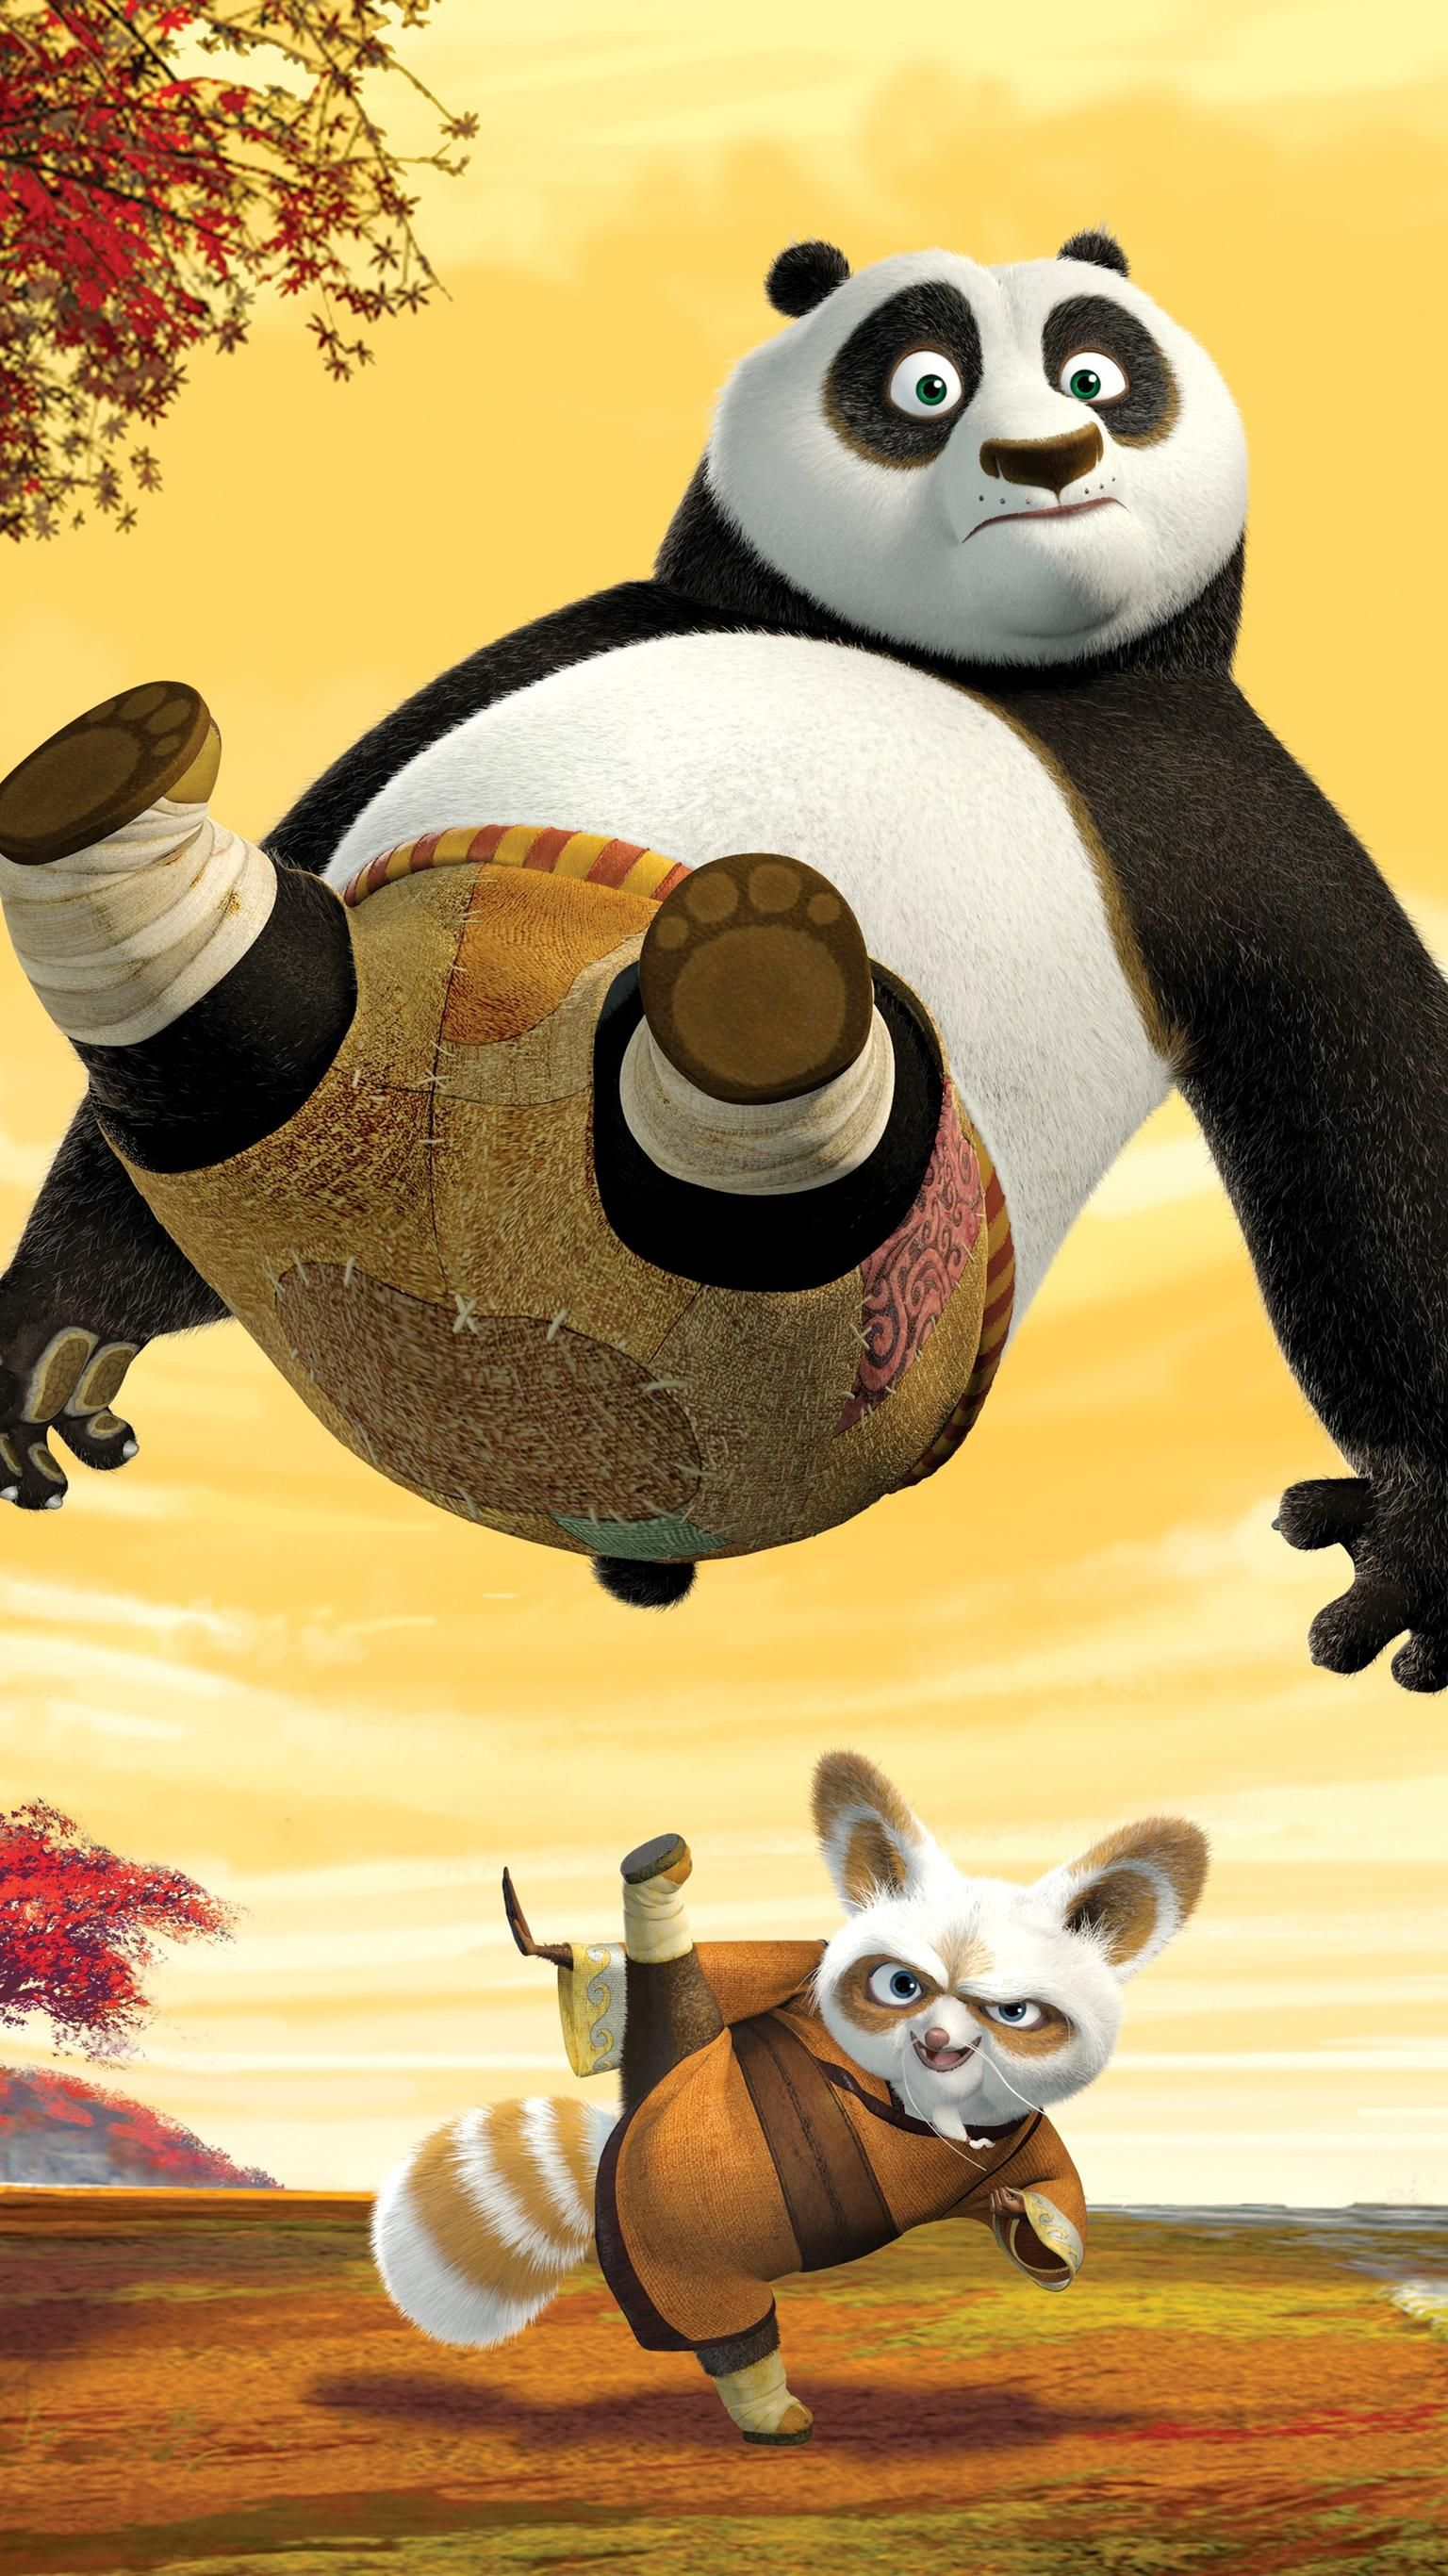 Kung Fu Panda 2008 Phone Wallpaper In 2020 Panda Wallpapers